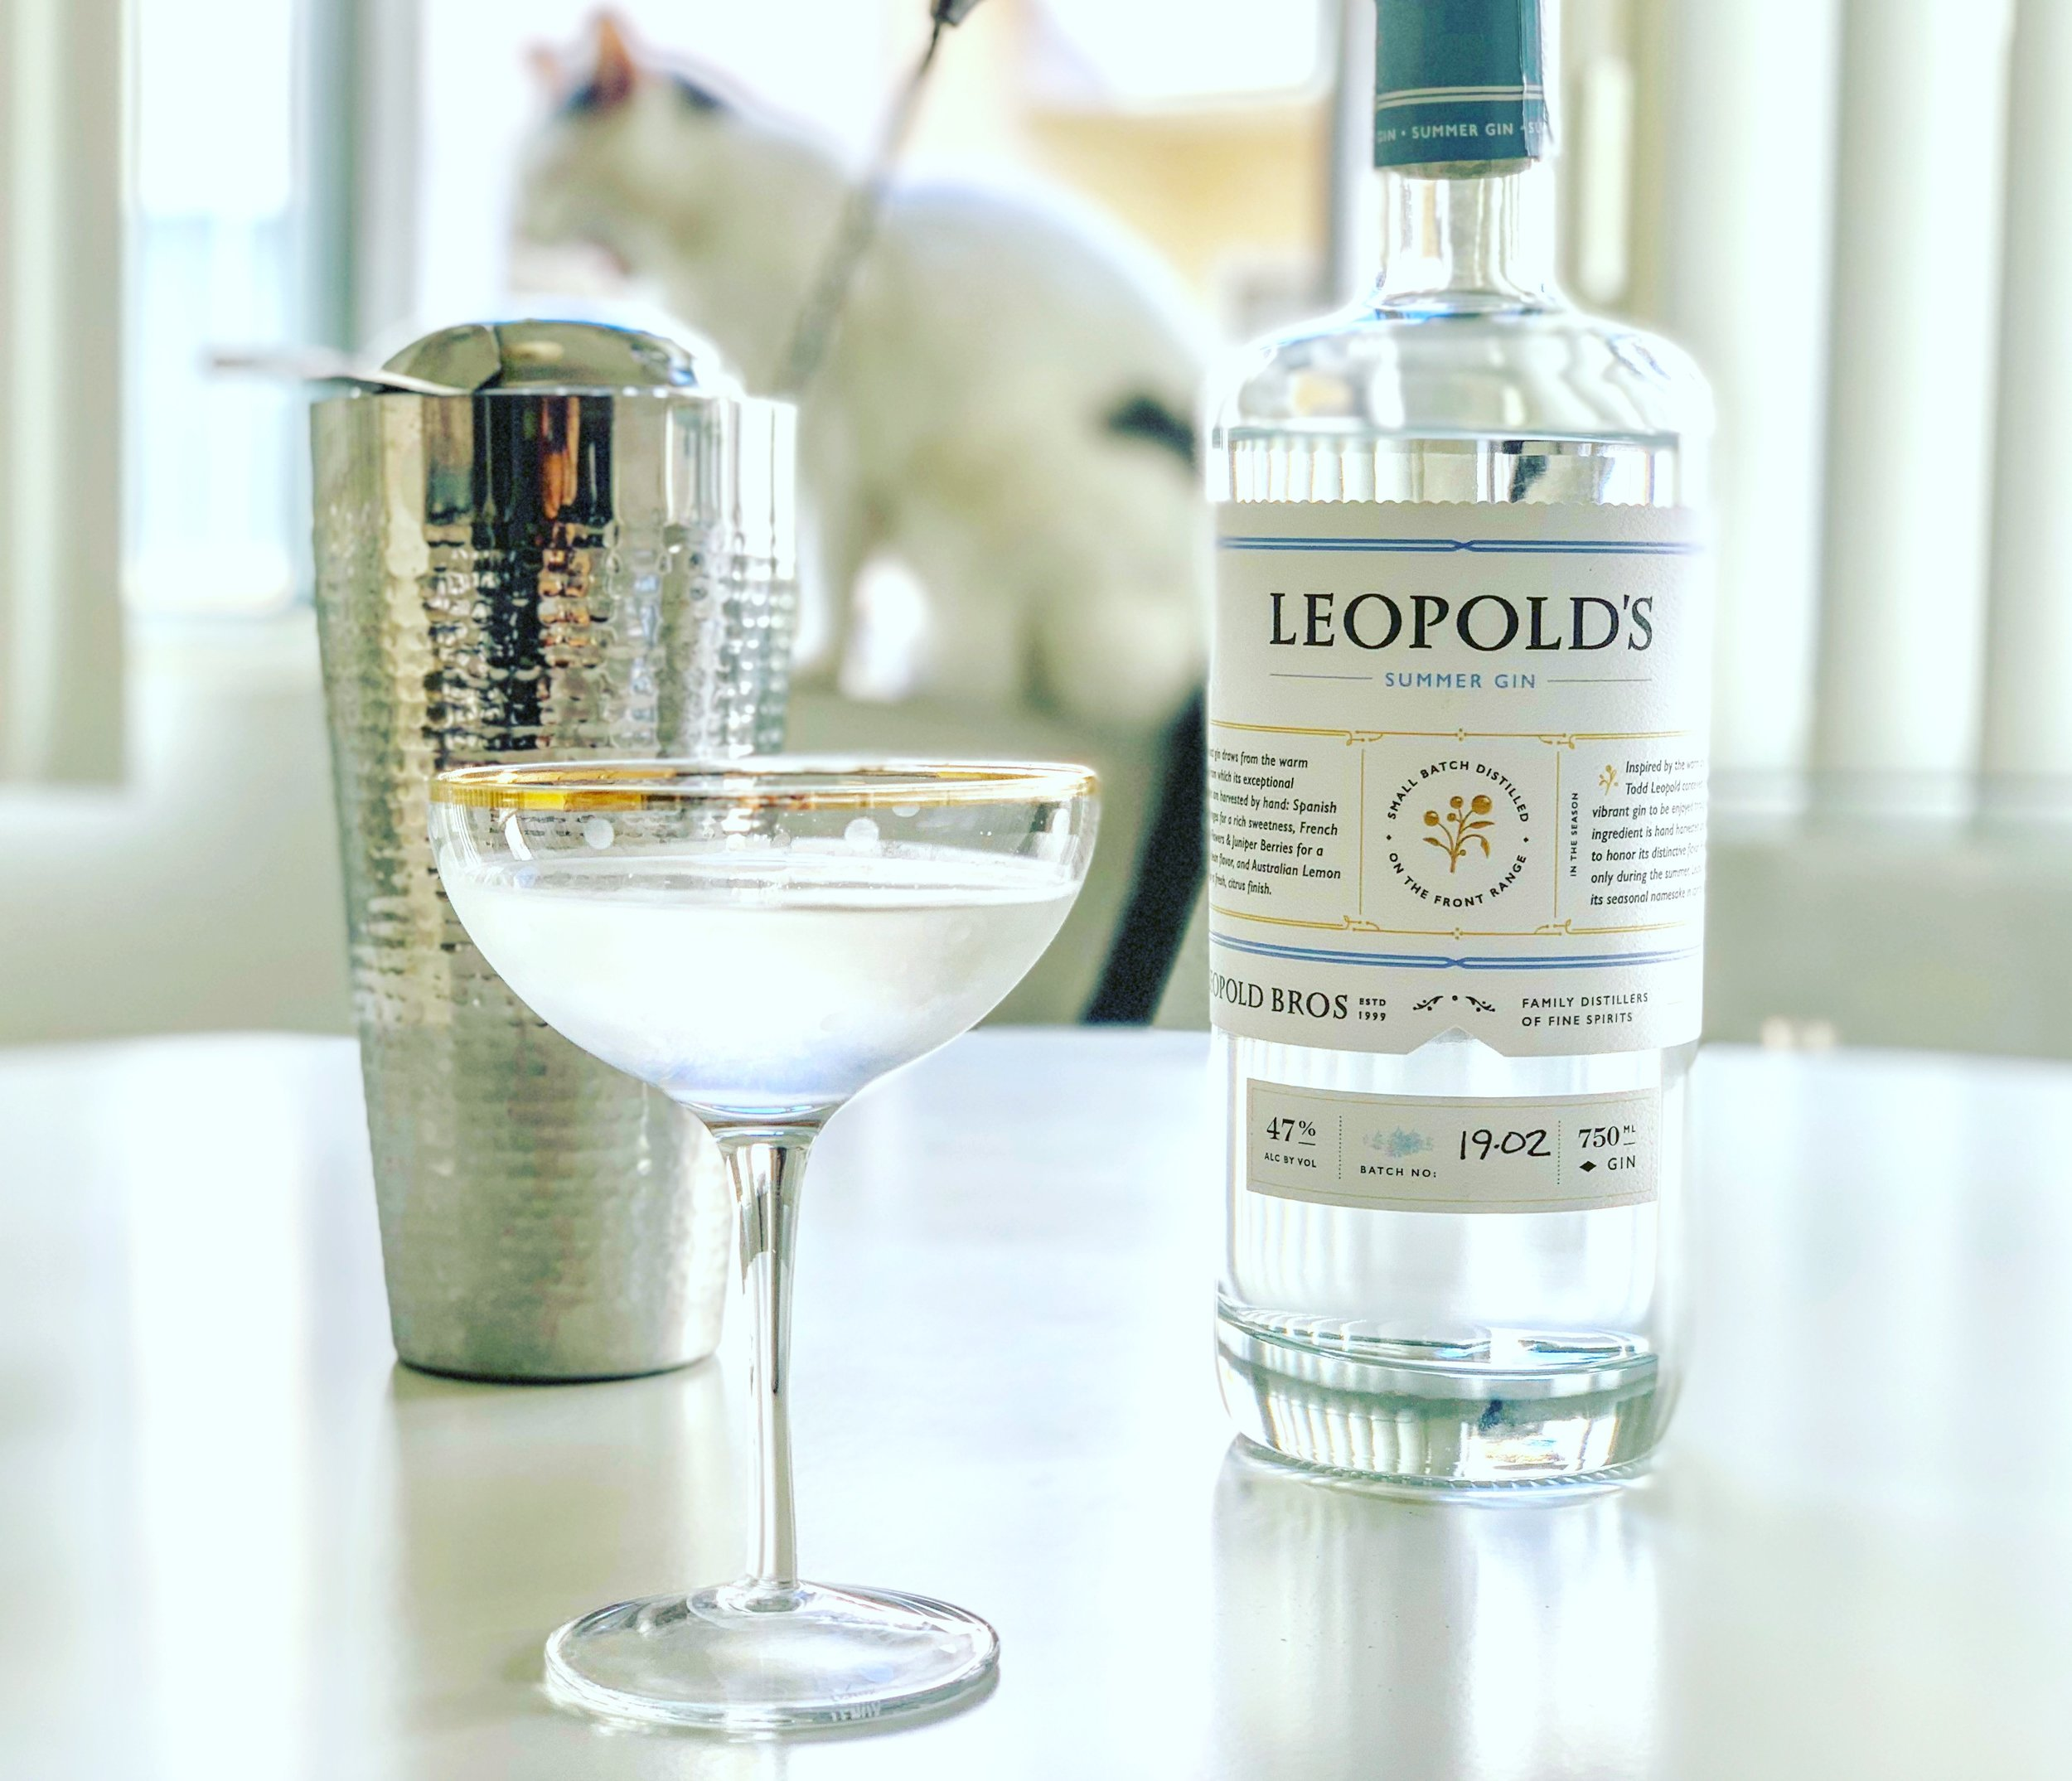 The new 2019 edition of Leopold's Summer gin